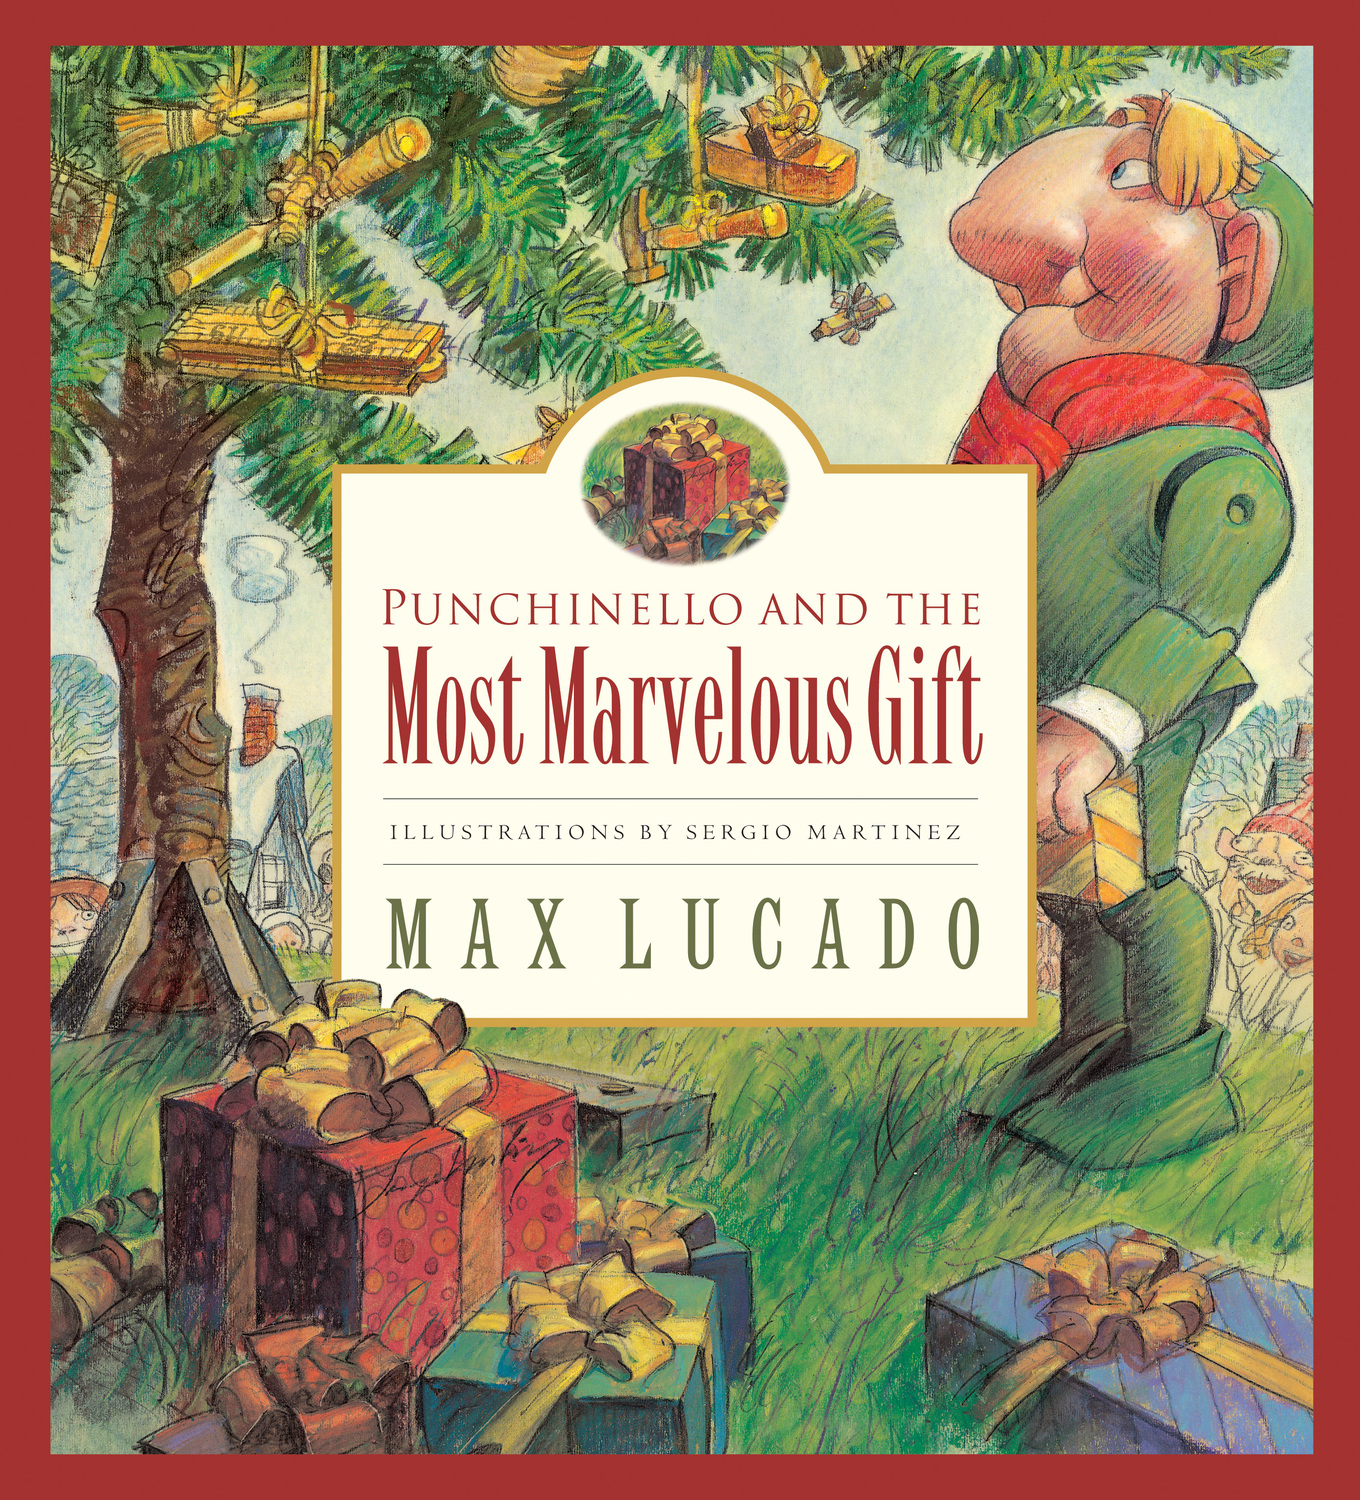 Punchinello and the Most Marvelous Gift